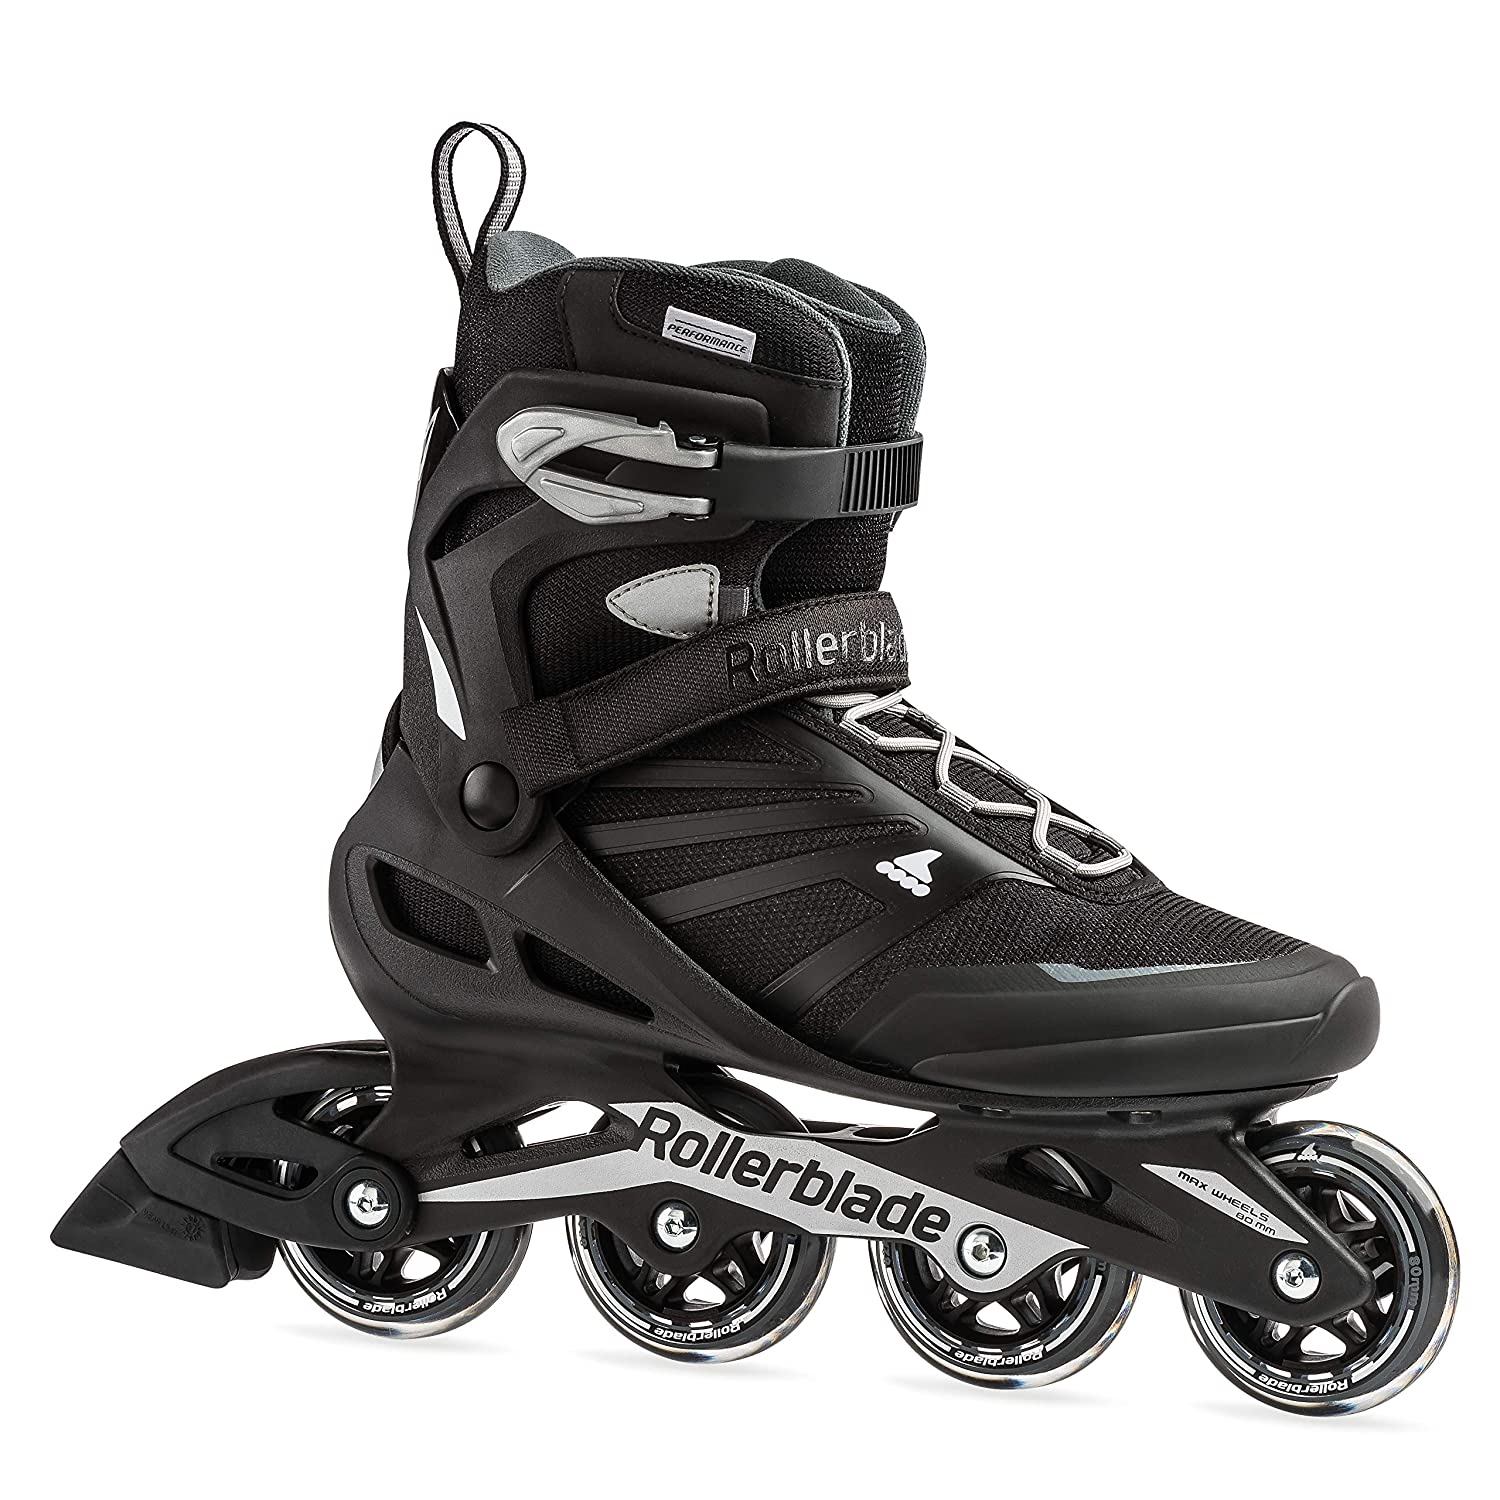 Rollerblade Zetrablade Men's Adult Fitness Inline Skate, Black and Silver, Performance Inline Skates